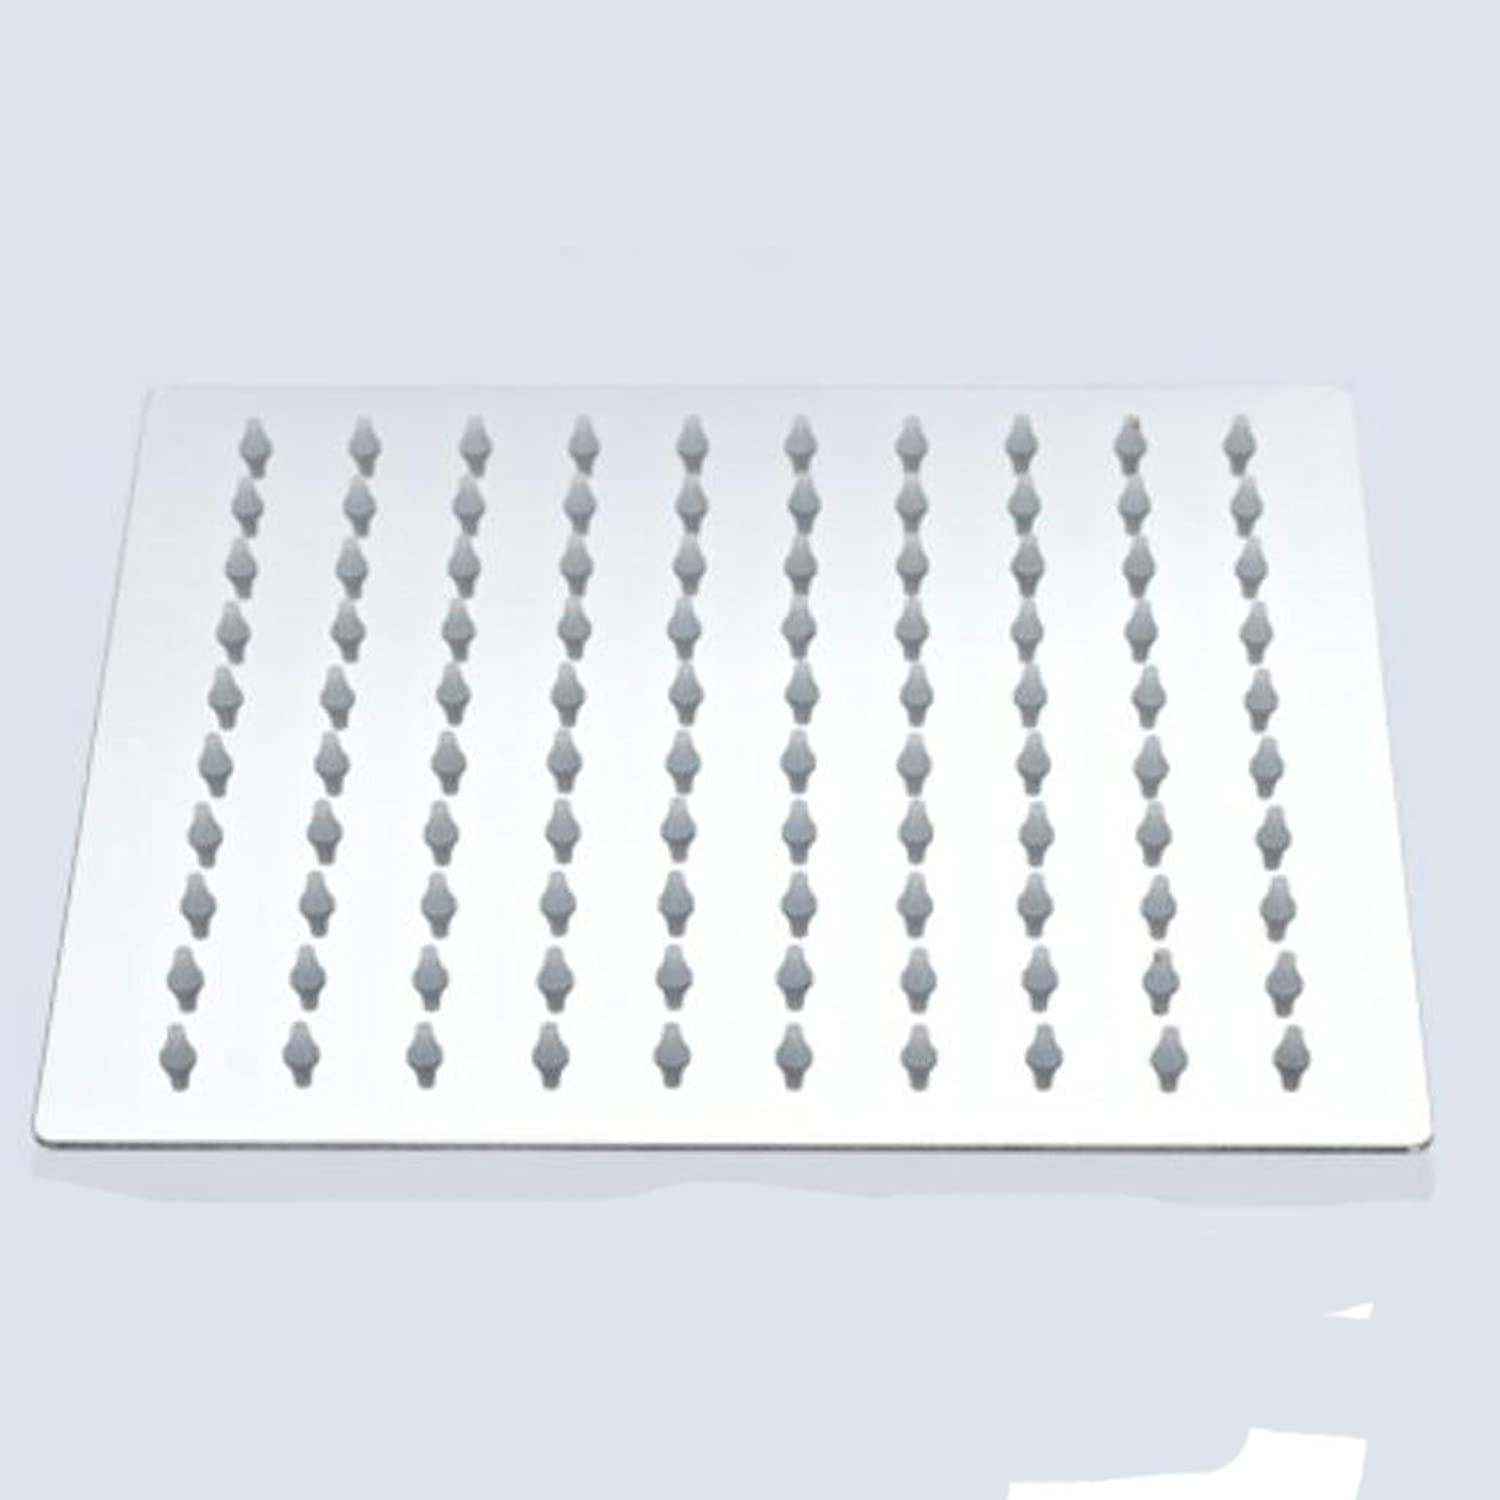 Rollsnownow 304 stainless steel square shape side length of 15 cm the number of holes 56 shower large water massage to enjoy